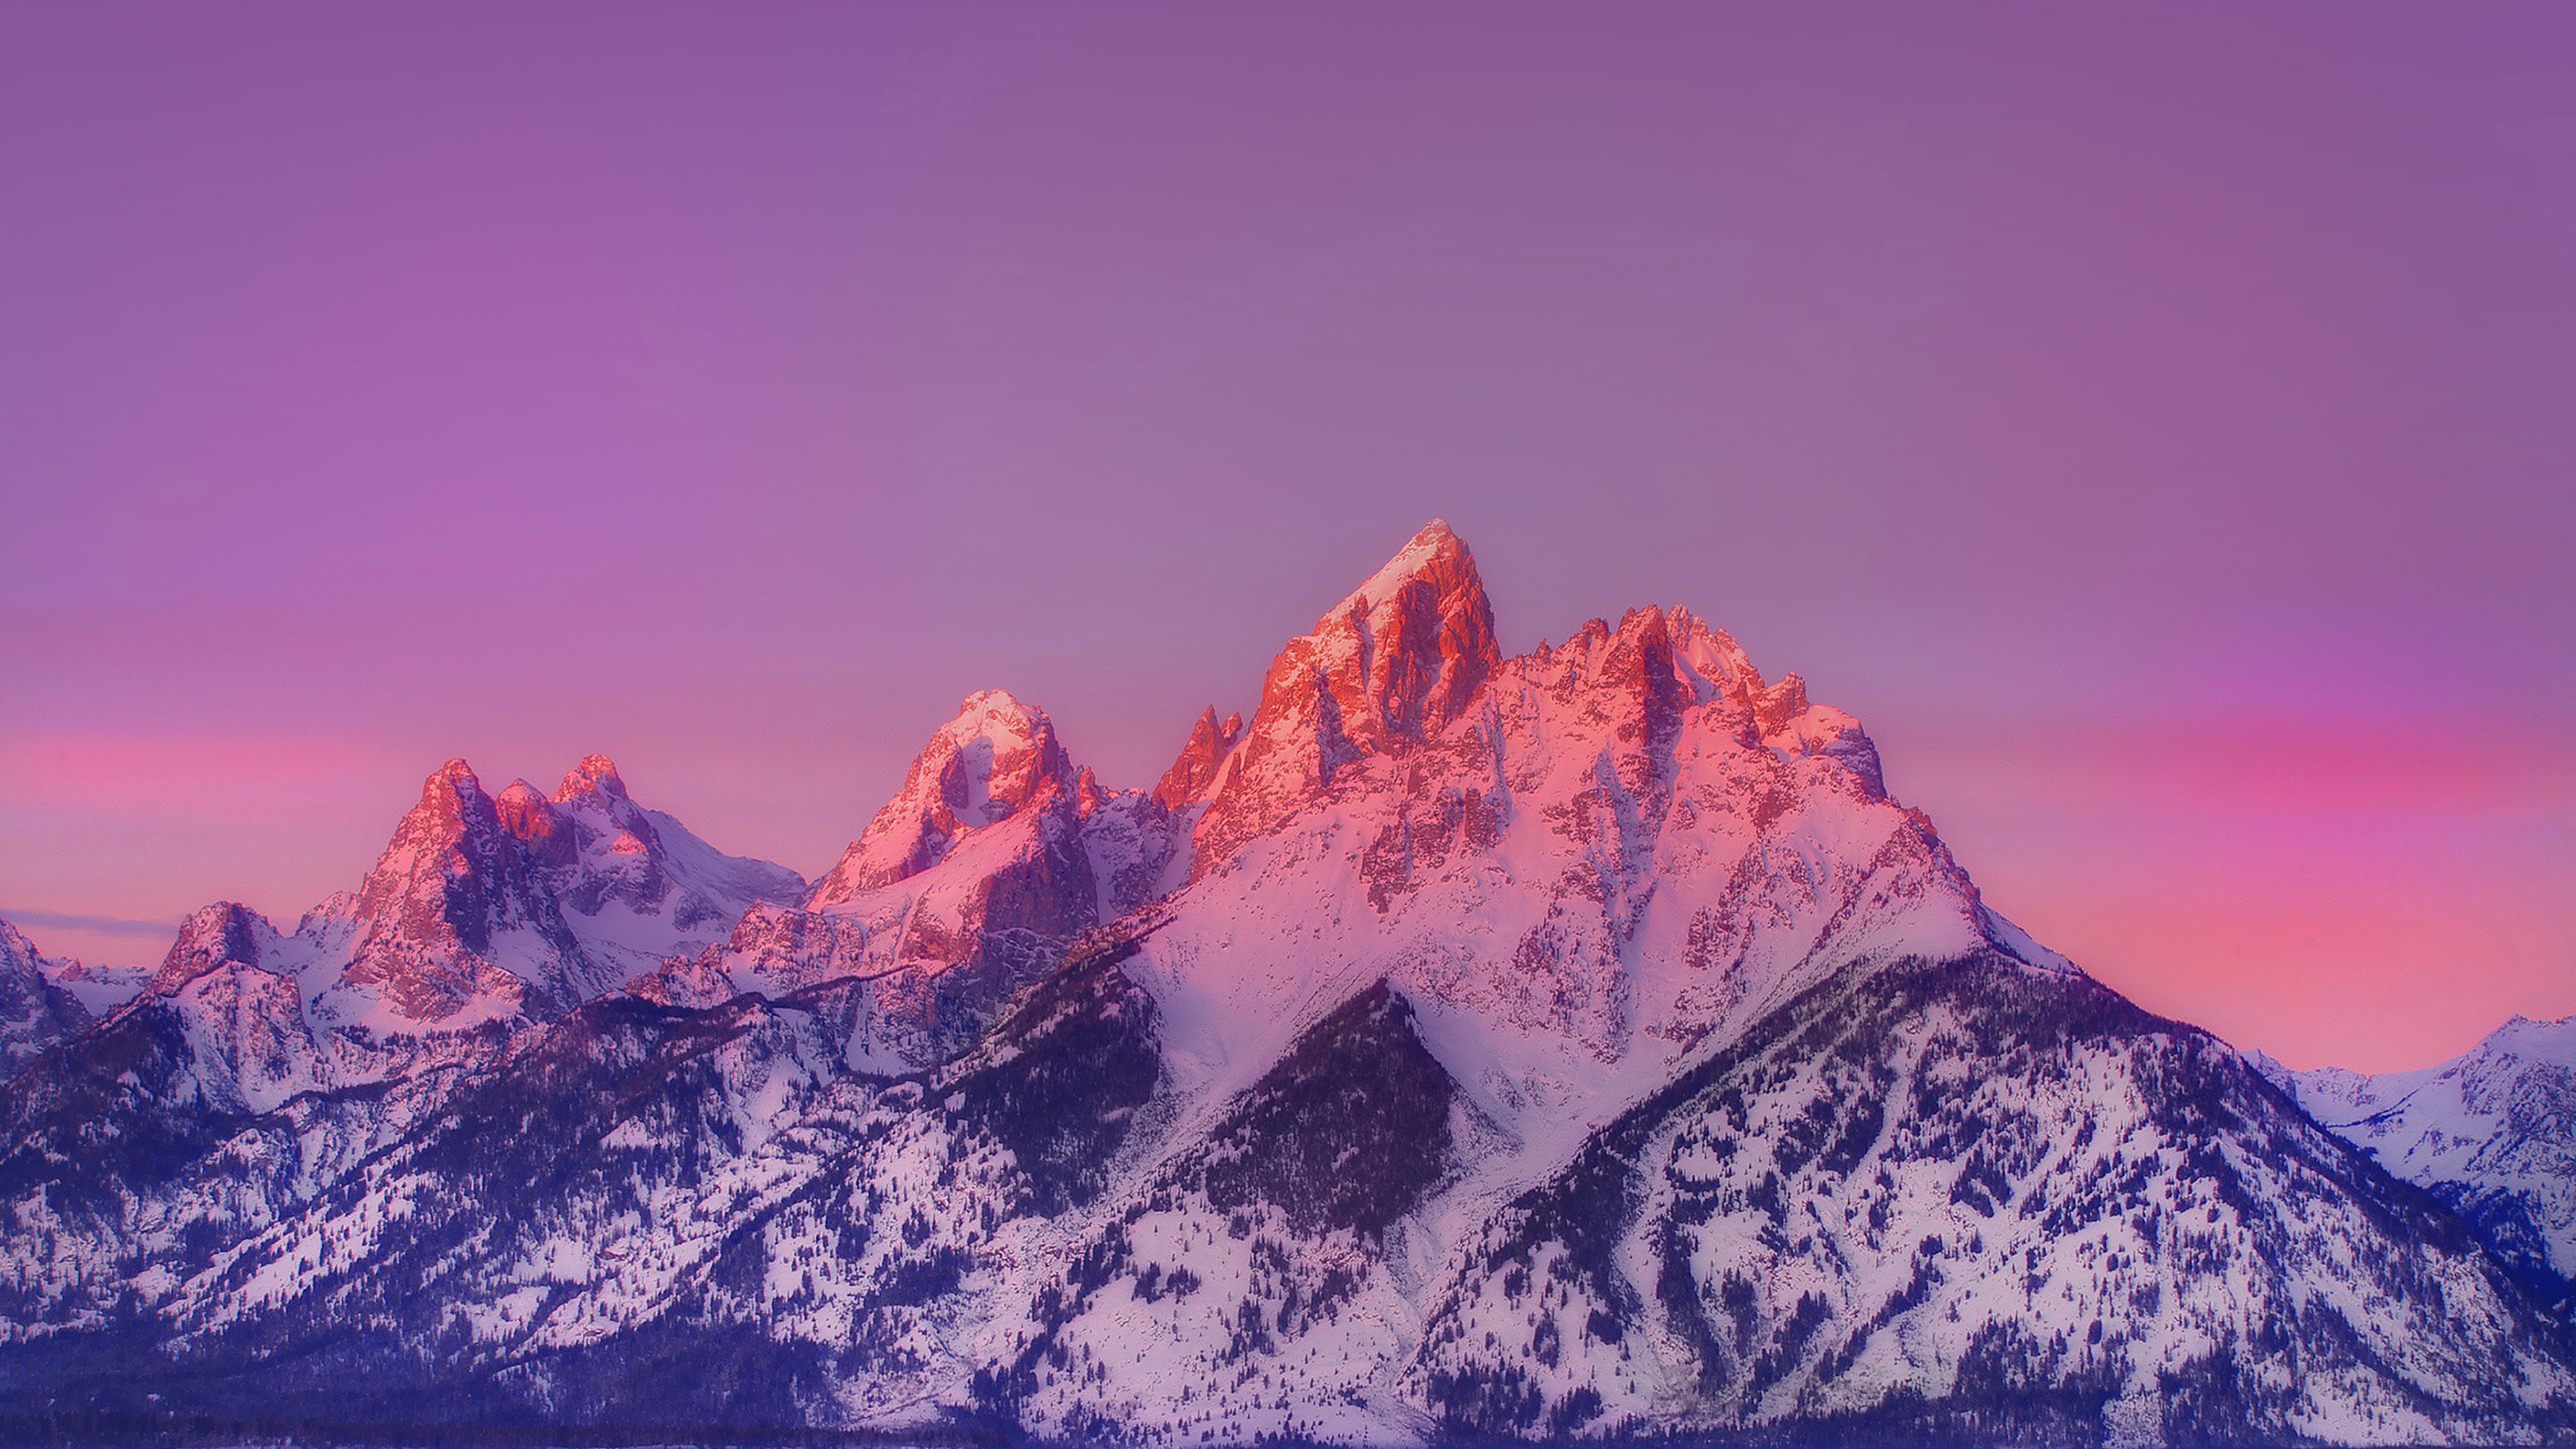 Mac Os X Leopard Wallpaper Hd Mg90 Mountain Mother Sunset Nature Awesome Sky Papers Co